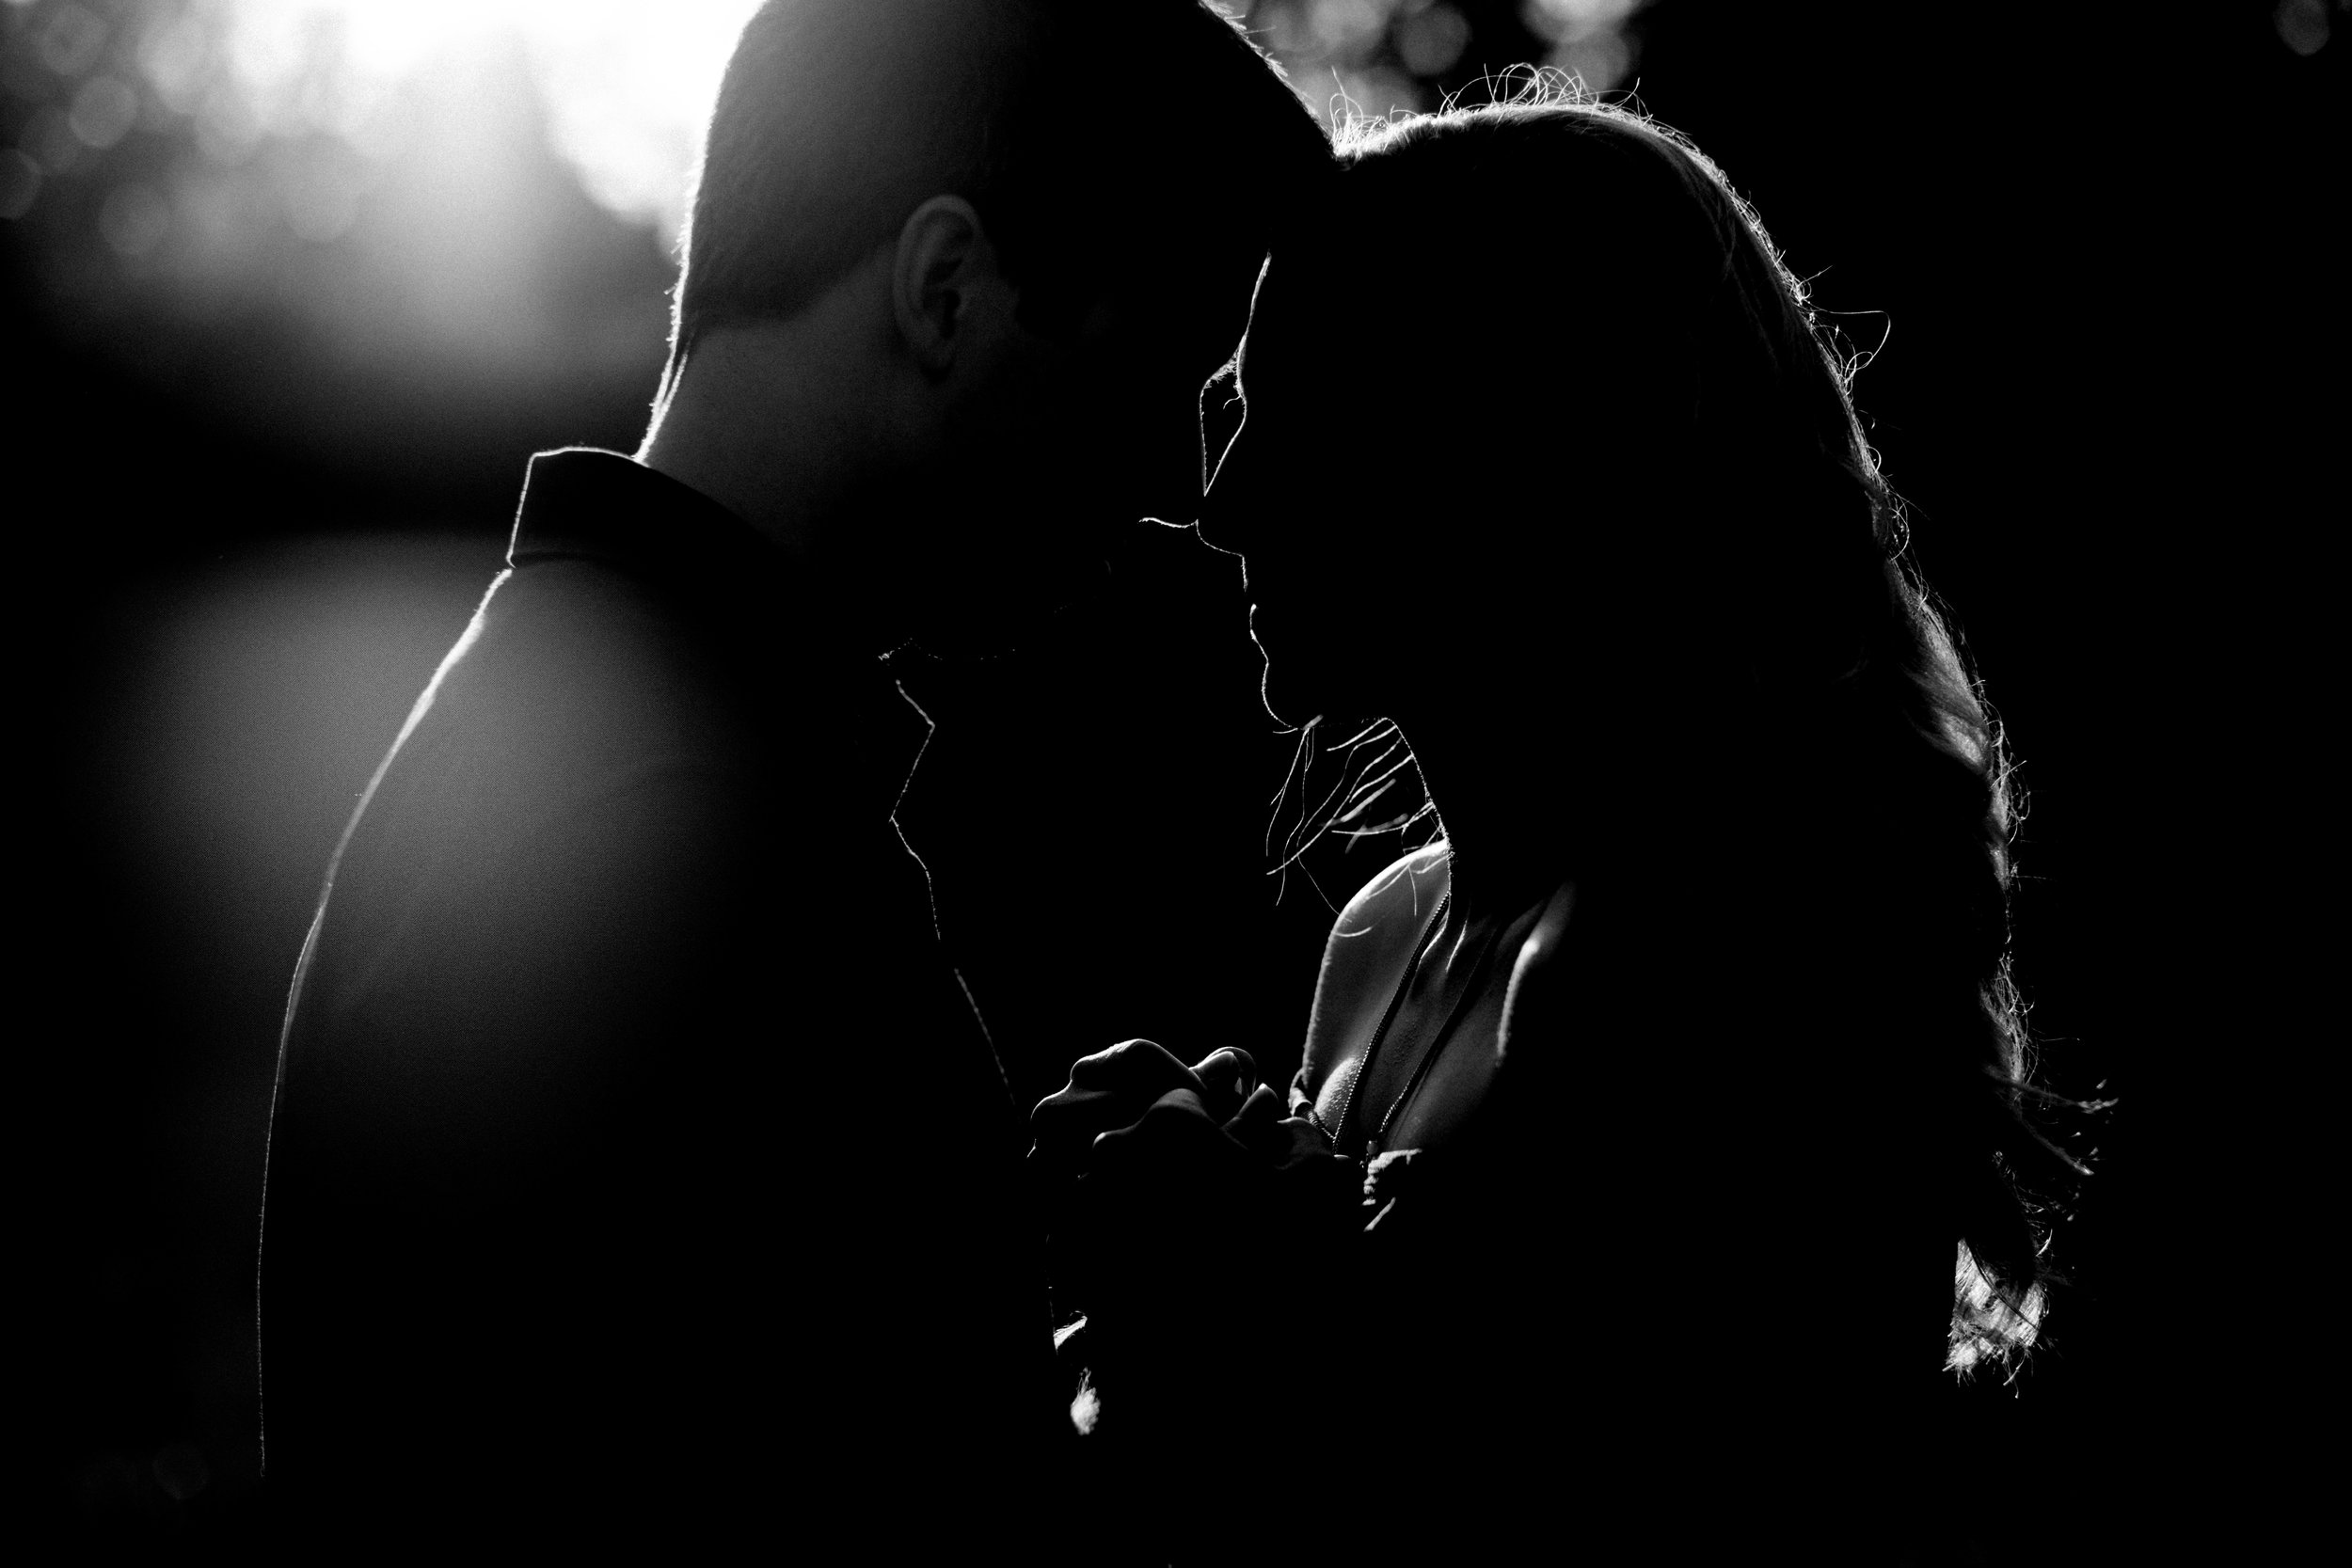 Black and white photography of engagement session at sunset.